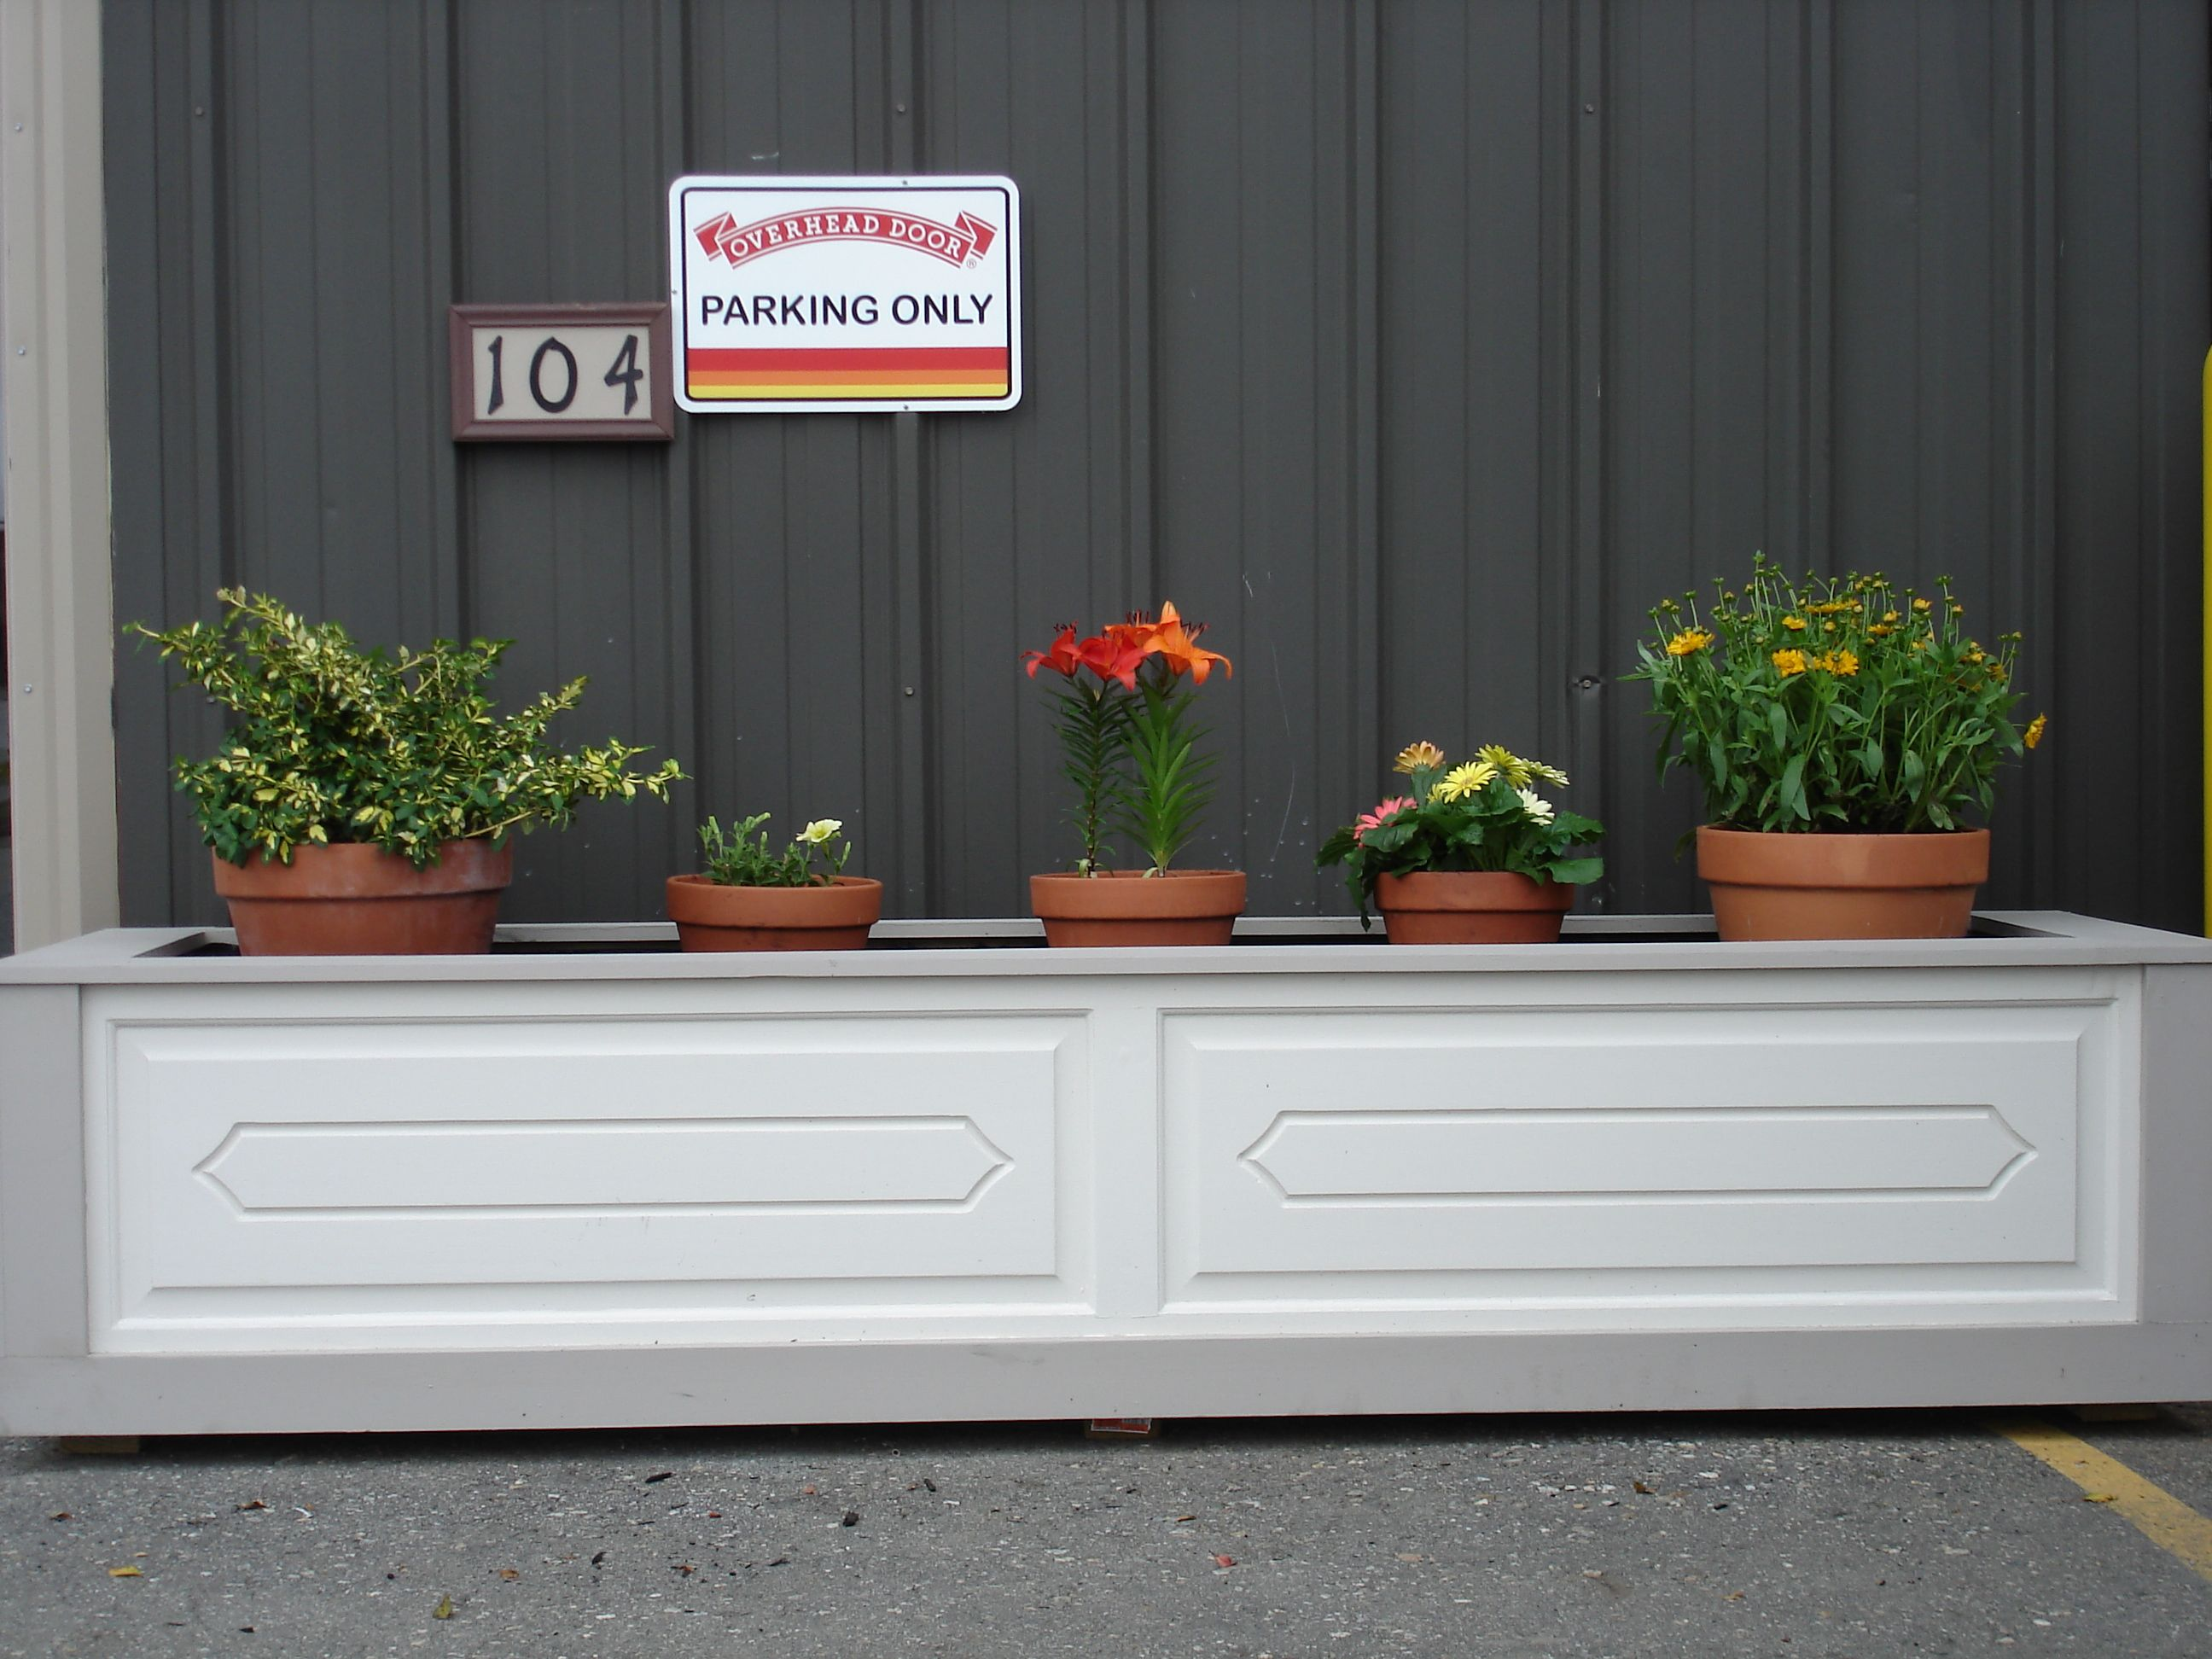 We Made A Set Of Matching Planters Out Of An Old Wood